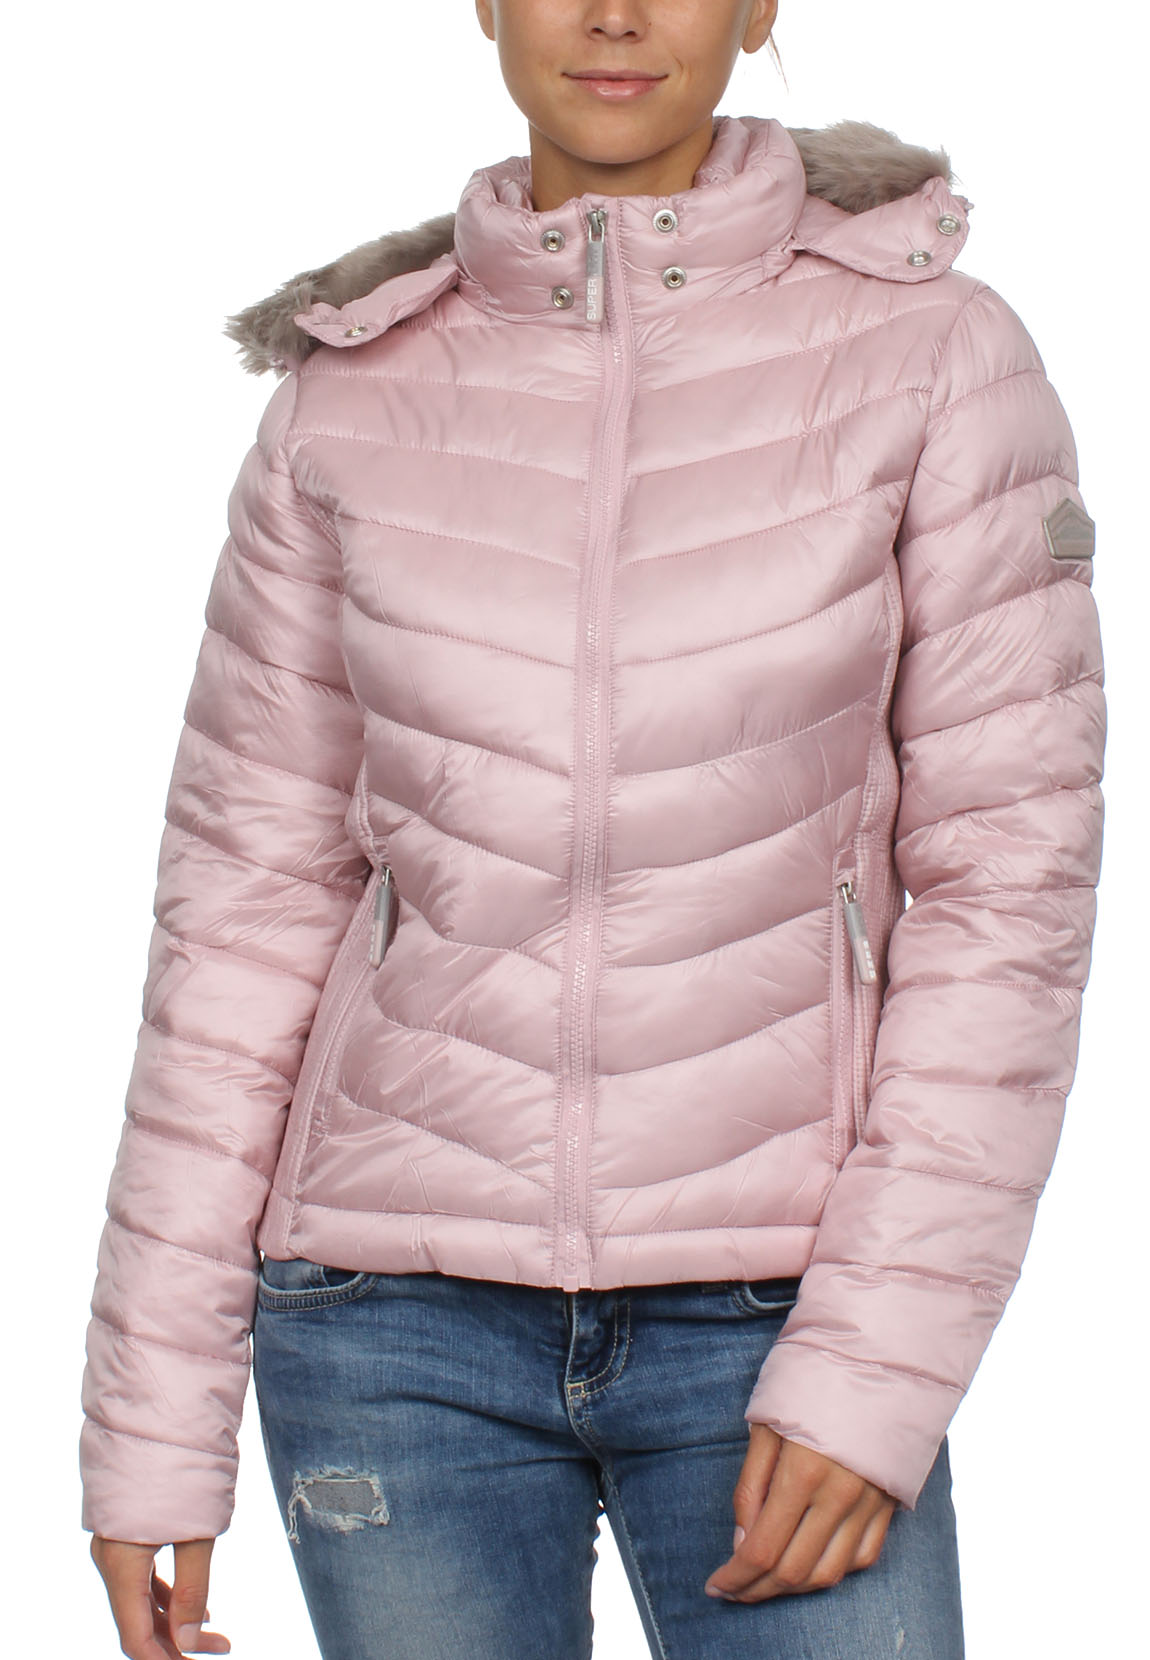 new concept 08114 8db9a Details zu Superdry Damen Jacke HOODED LUXE CHEVRON FUJI Rose Quartz